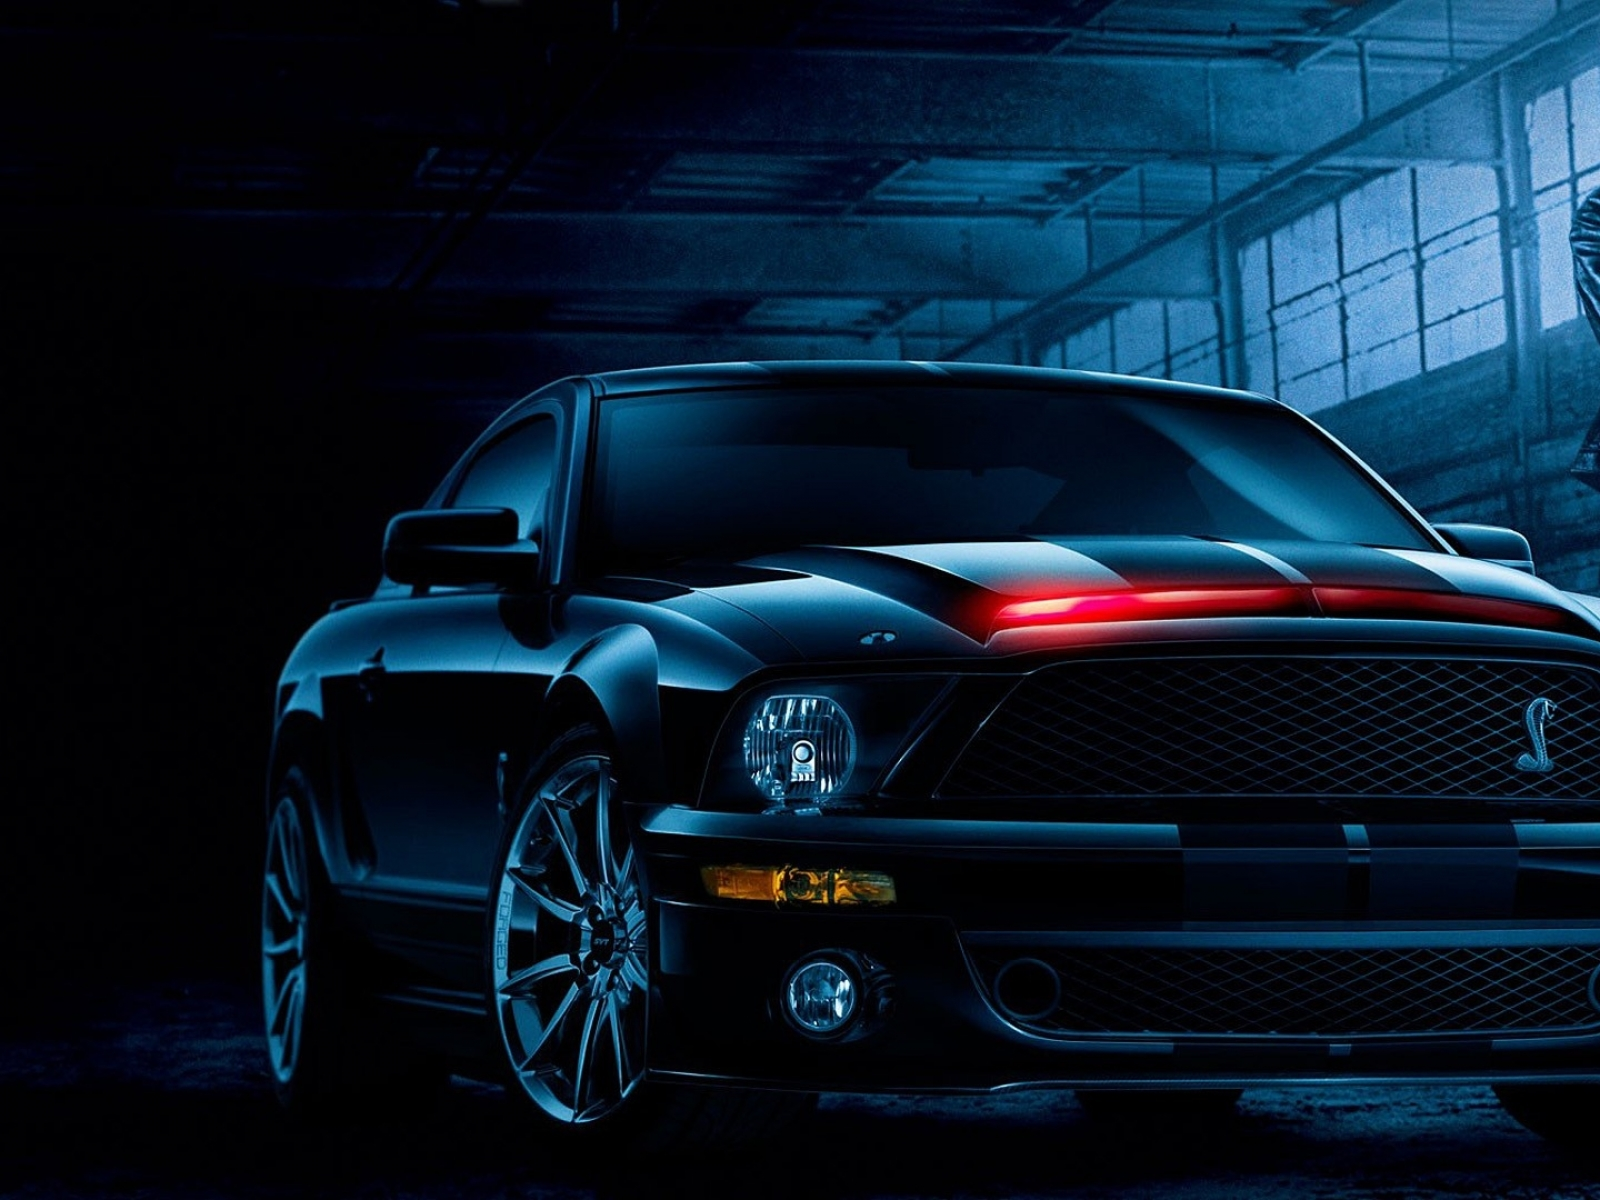 muscle cars ford mustang knight rider widescreen 1920x1080 wallpaper 1600x1200